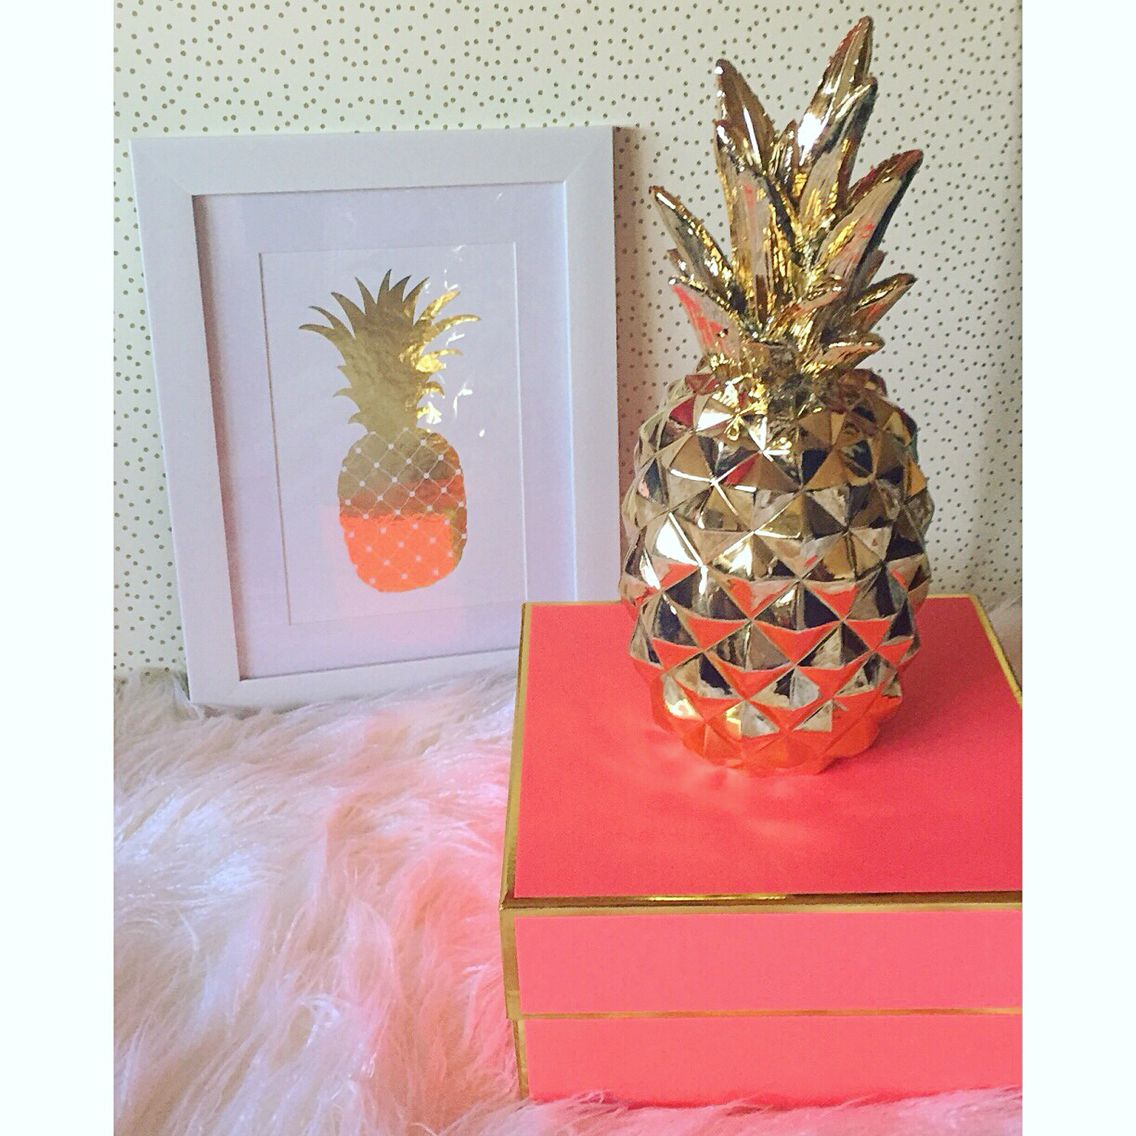 Gold Pineapple Decor & Coral Box For Office